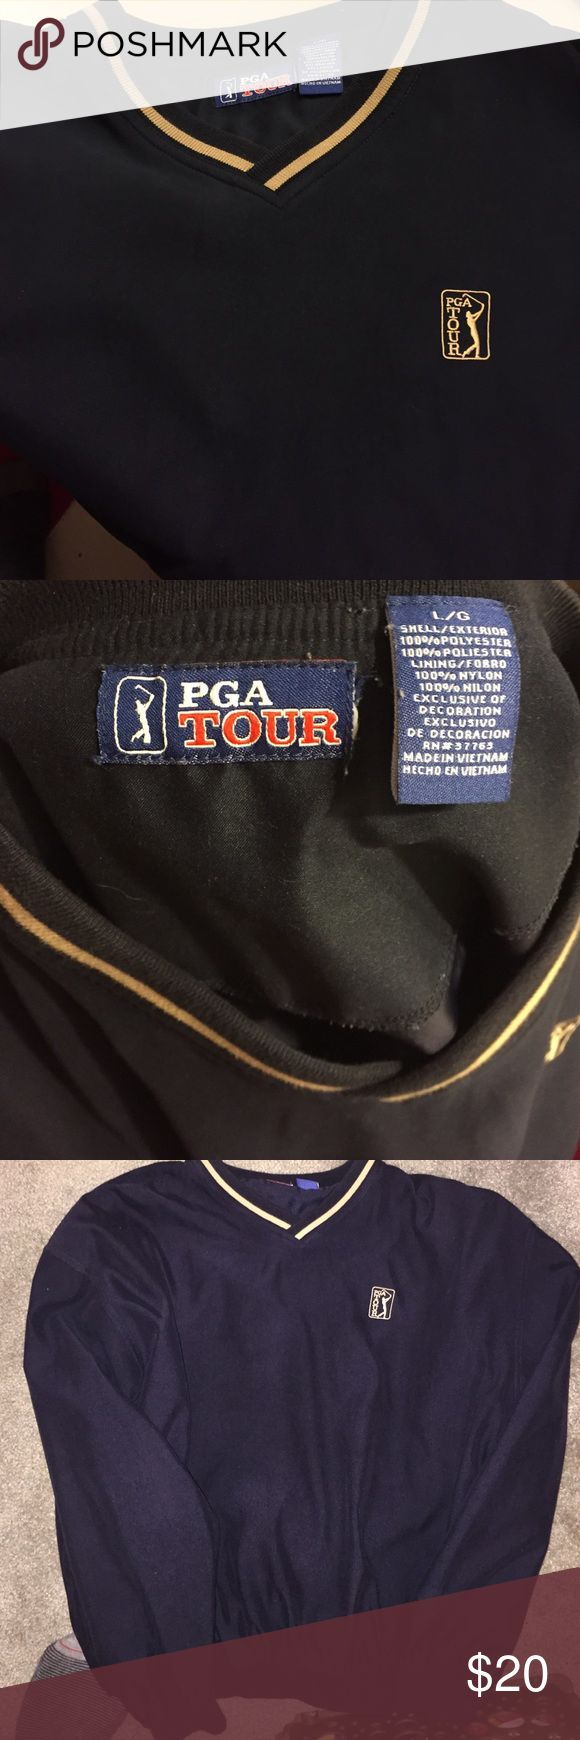 PGA tour golf wind/rain breaker Large PGA tour cover up. Perfect for on top of a golf shirt when out on the fairway. Great as a wind breaker and also water proof. PGA Tour Jackets & Coats Lightweight & Shirt Jackets